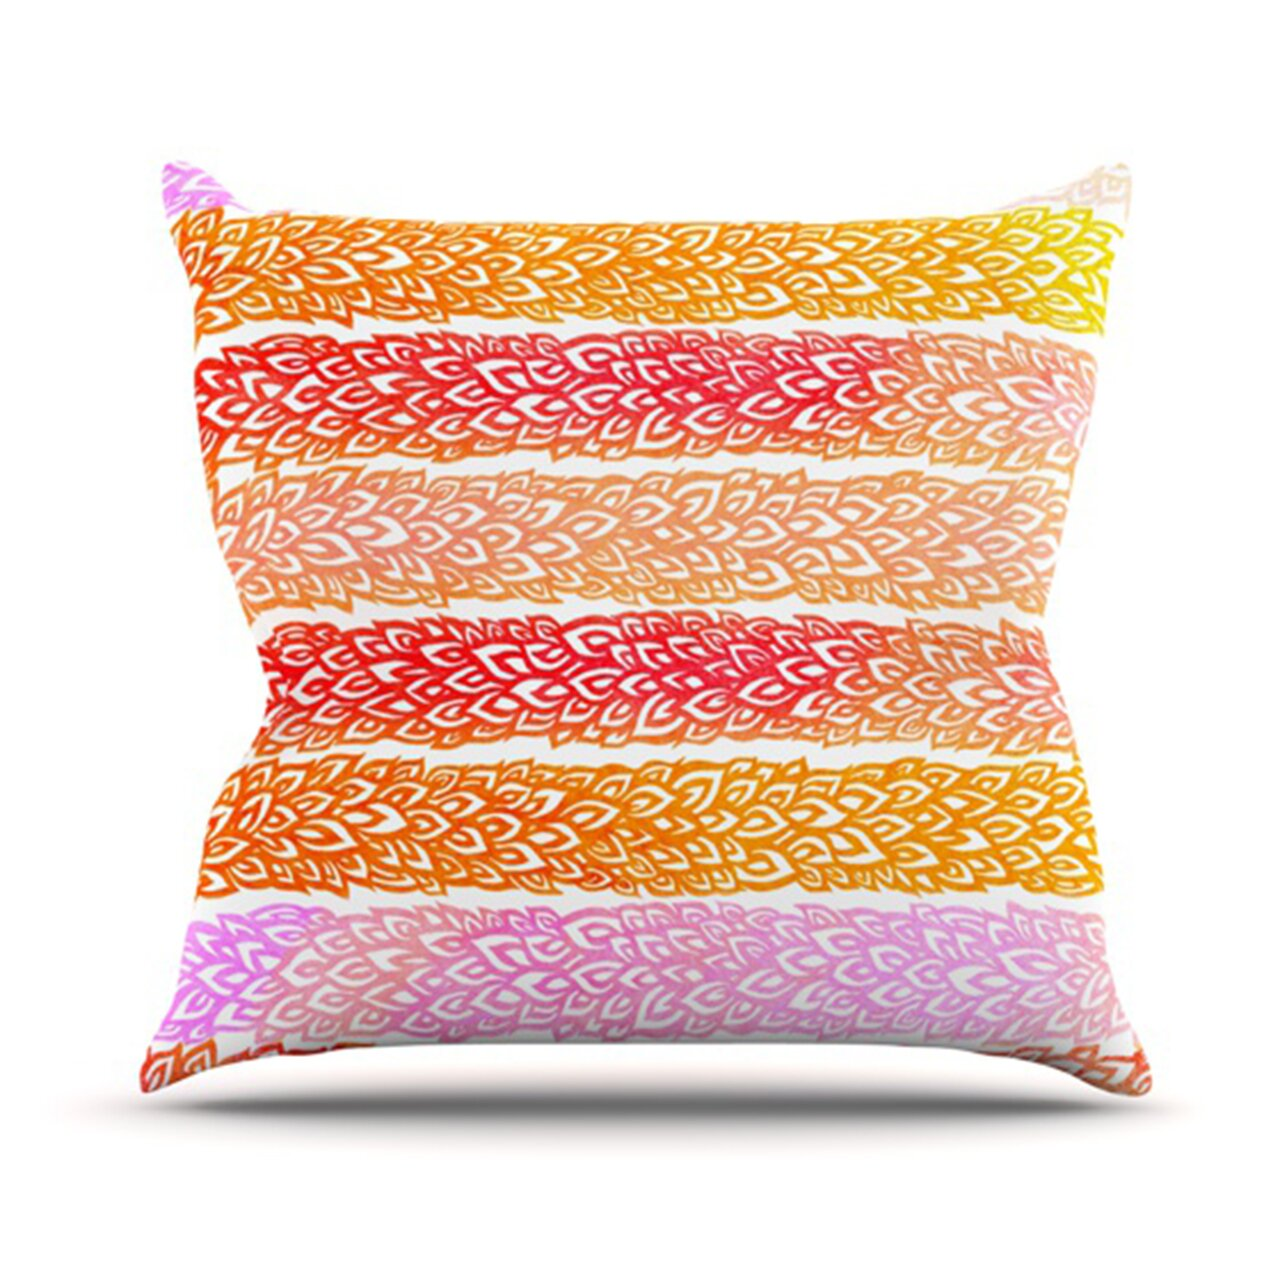 Decorative Pillow Wayfair : KESS InHouse Throw Pillow Wayfair